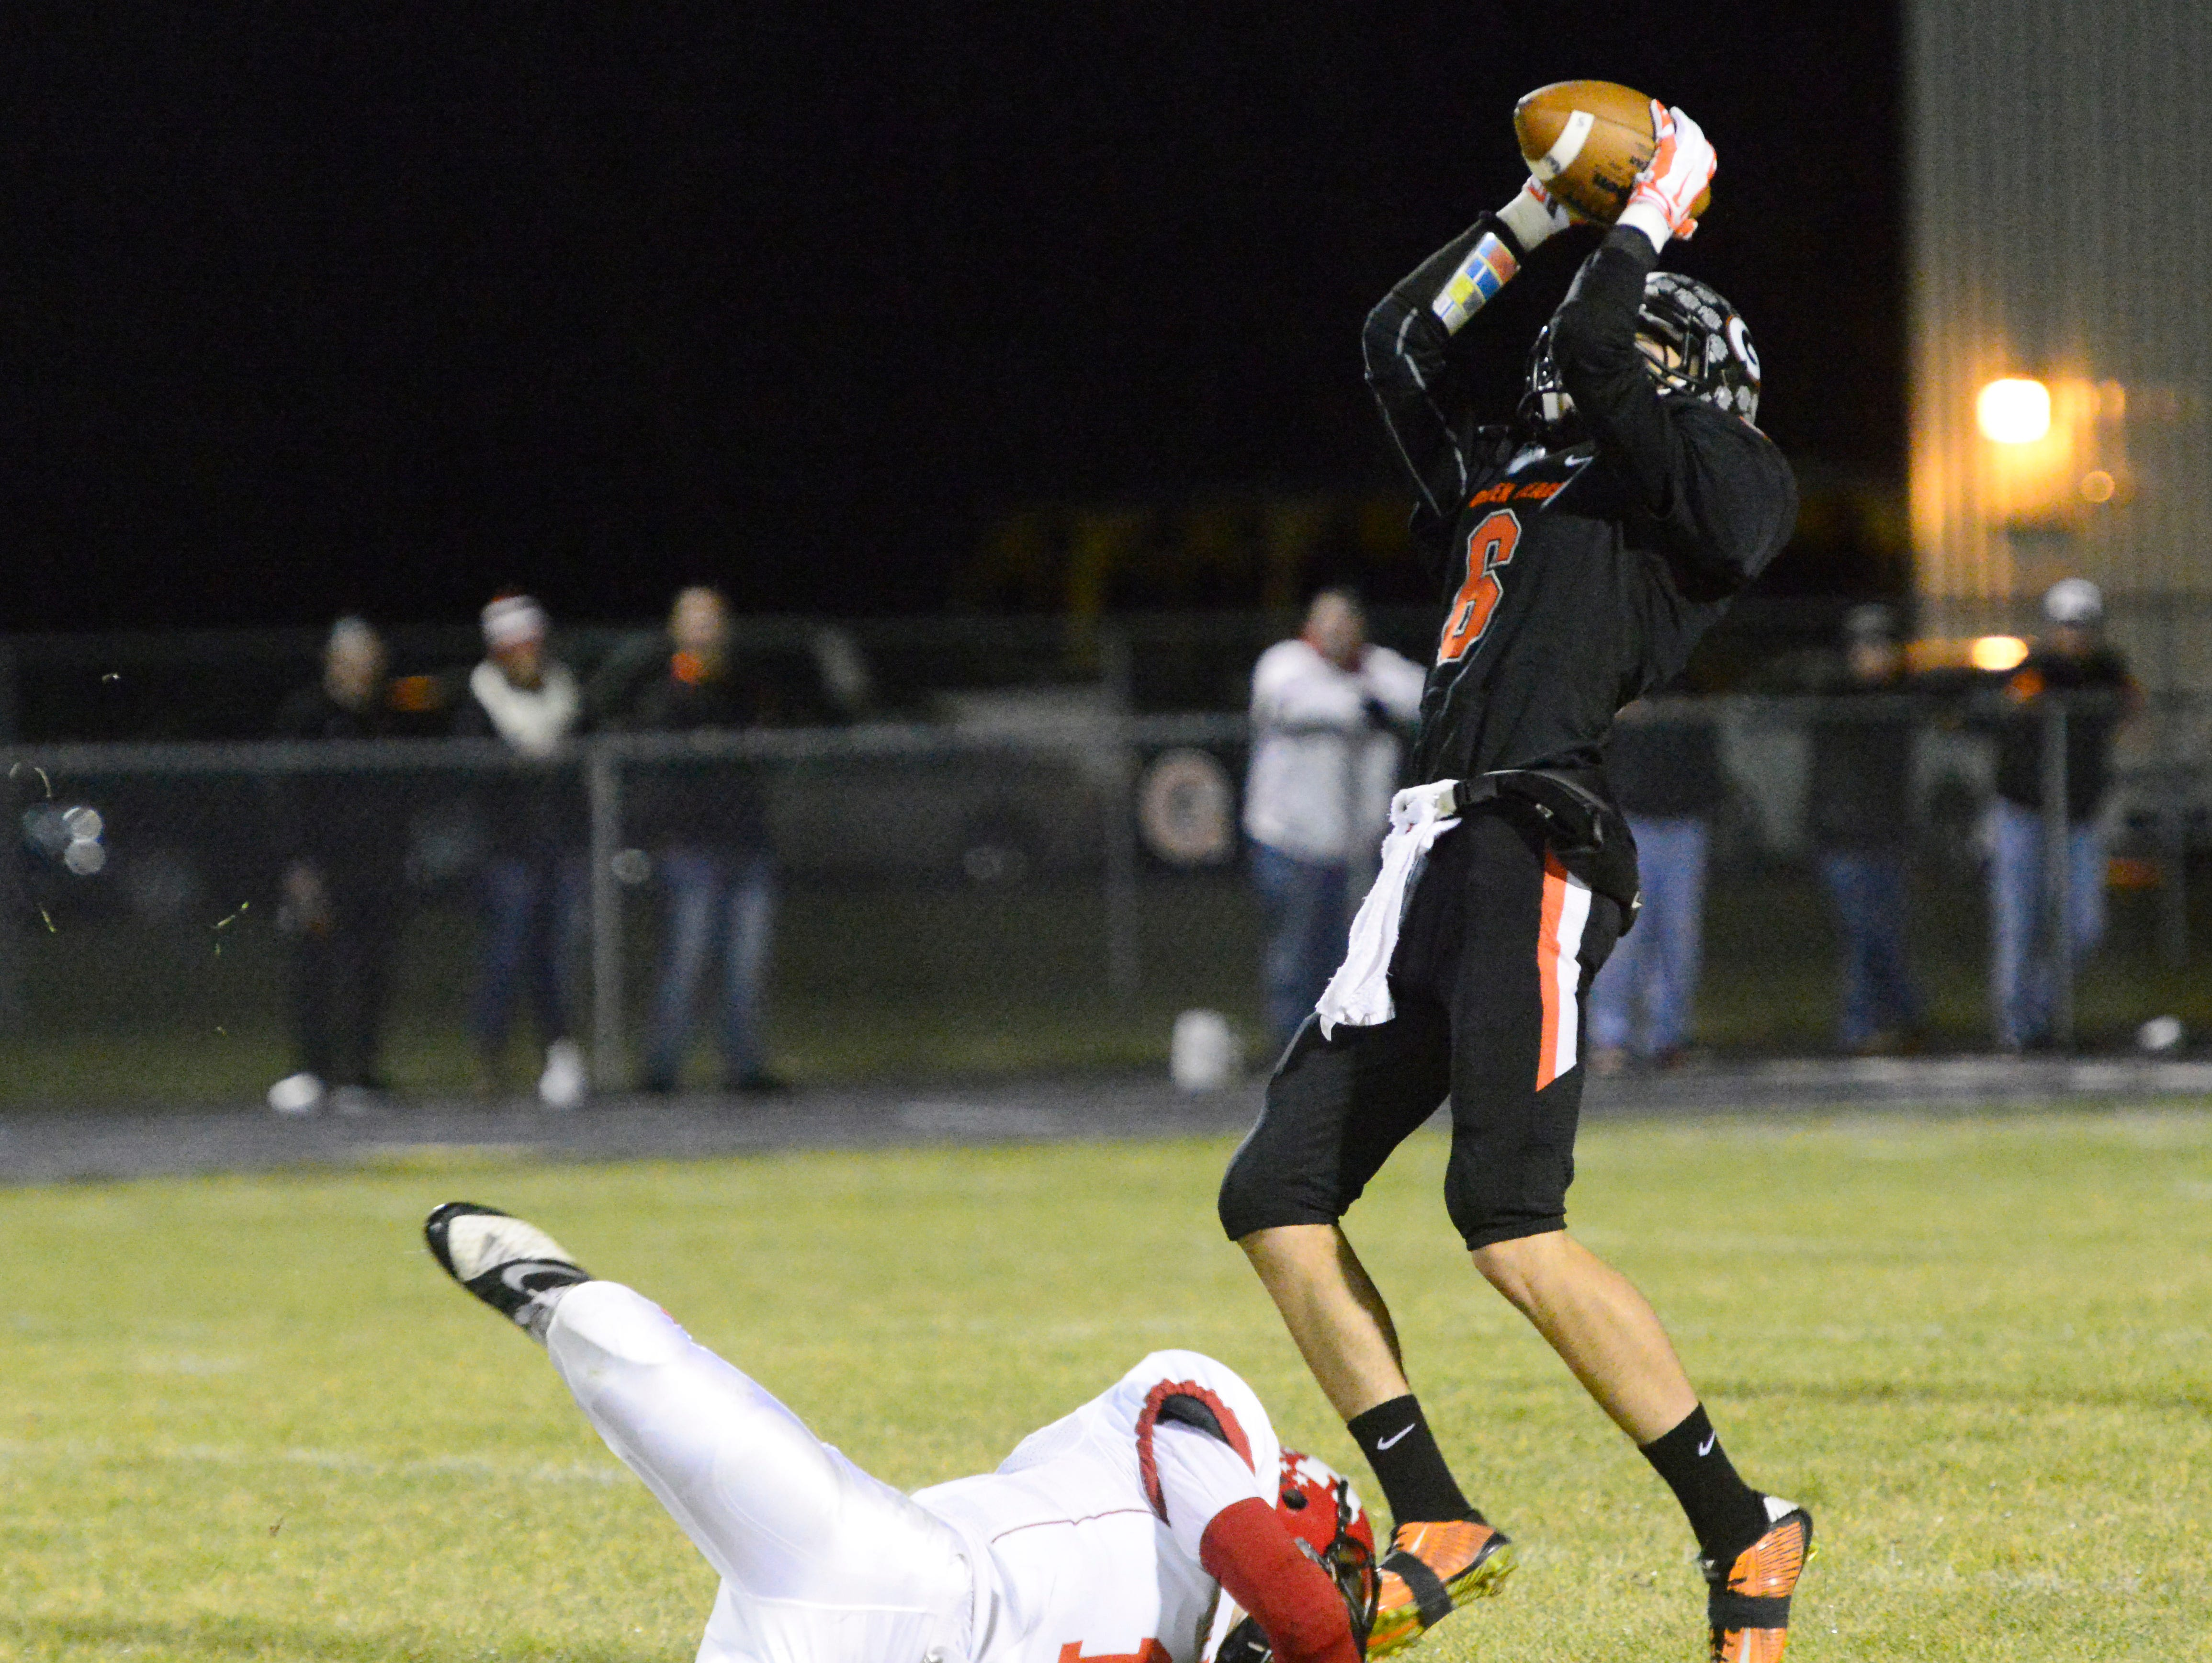 Gibsonburg's Marcus Tille makes the catch and scores a touchdown to make the score 34-12 on Friday night.